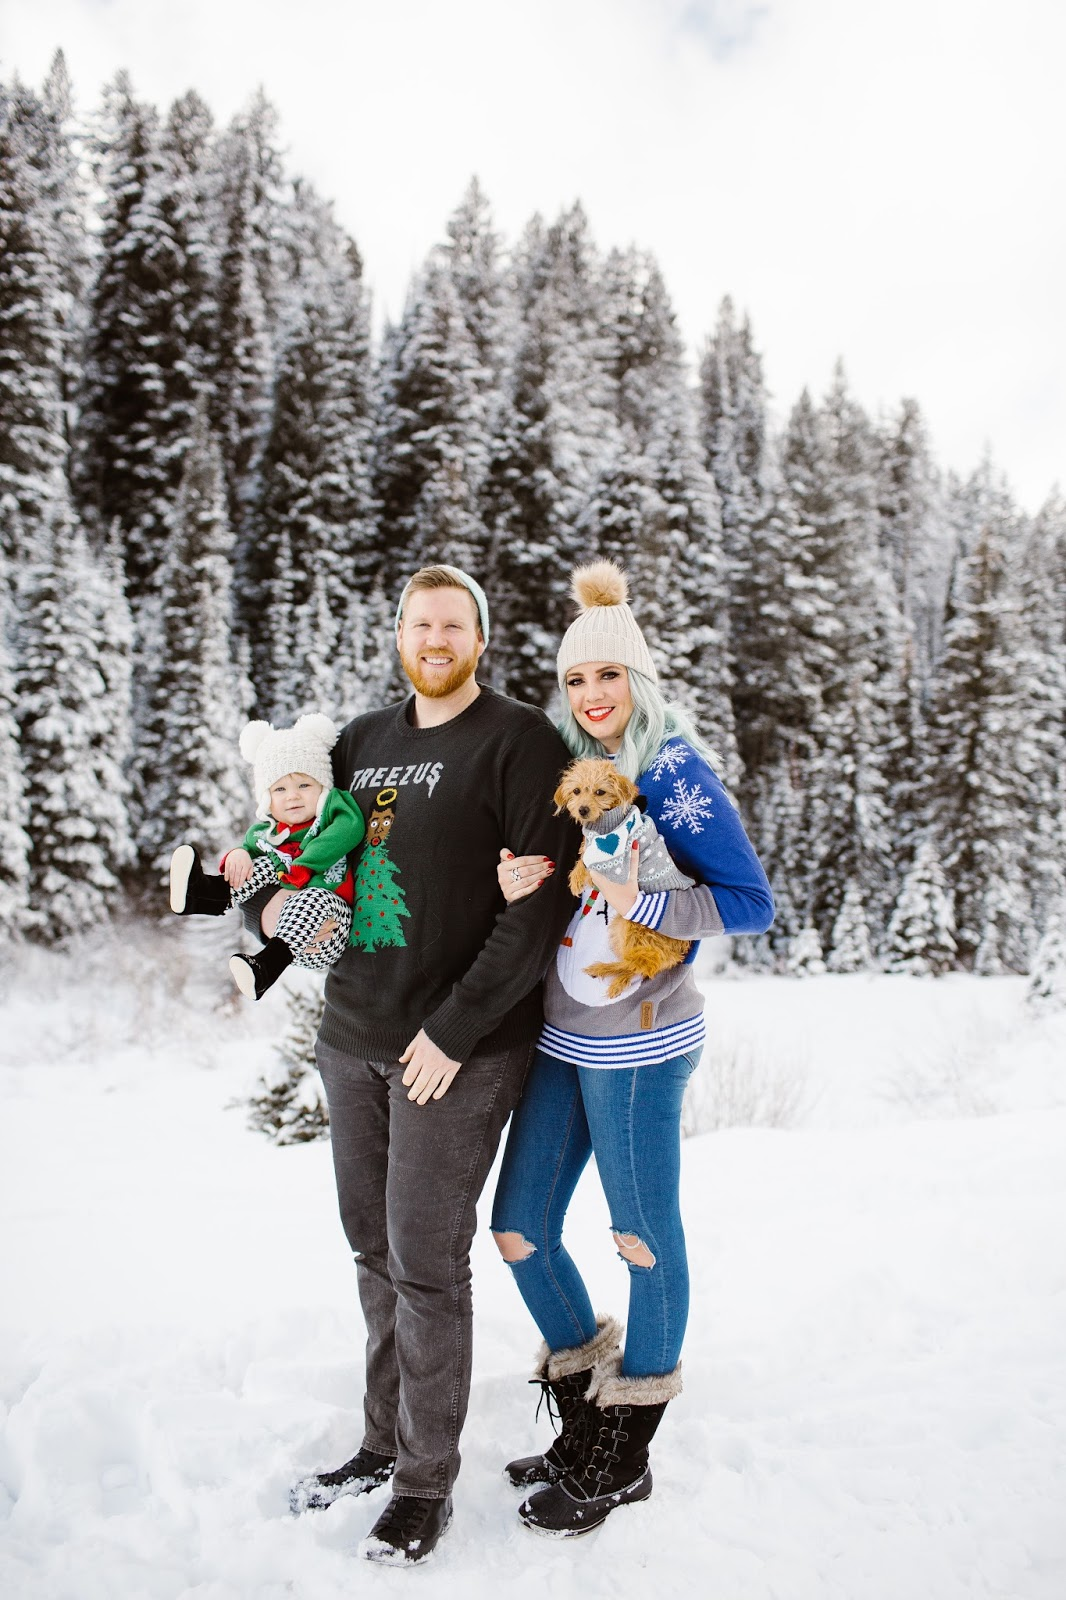 Winter Family Photos, Family Photo Ideas, Christmas Sweaters